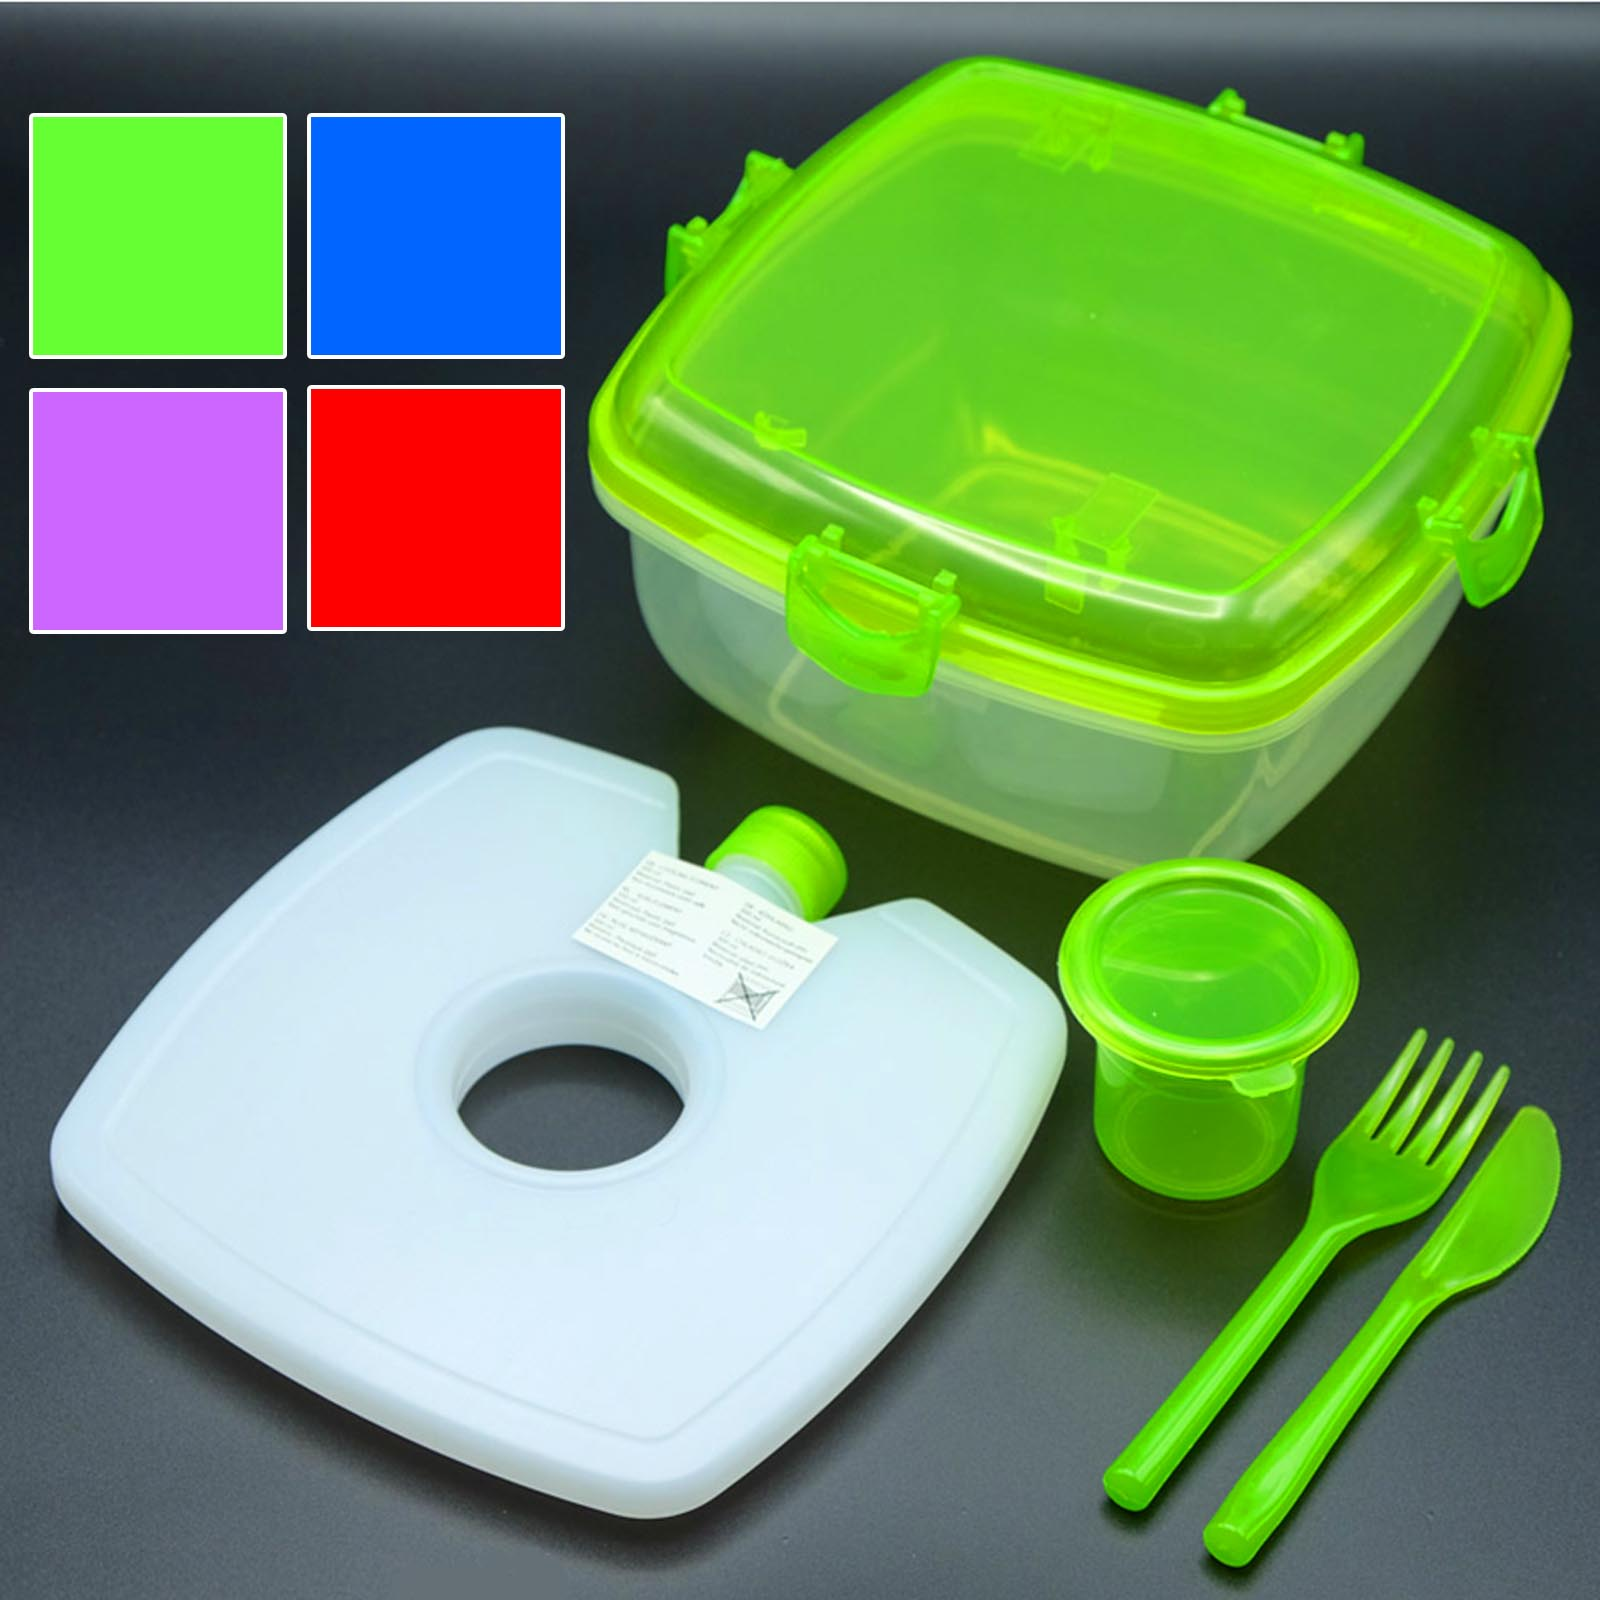 Lunchbox-Set Salat-To-Go | Frischhalte-Box Kühlakku | Lunchbox_cool_var